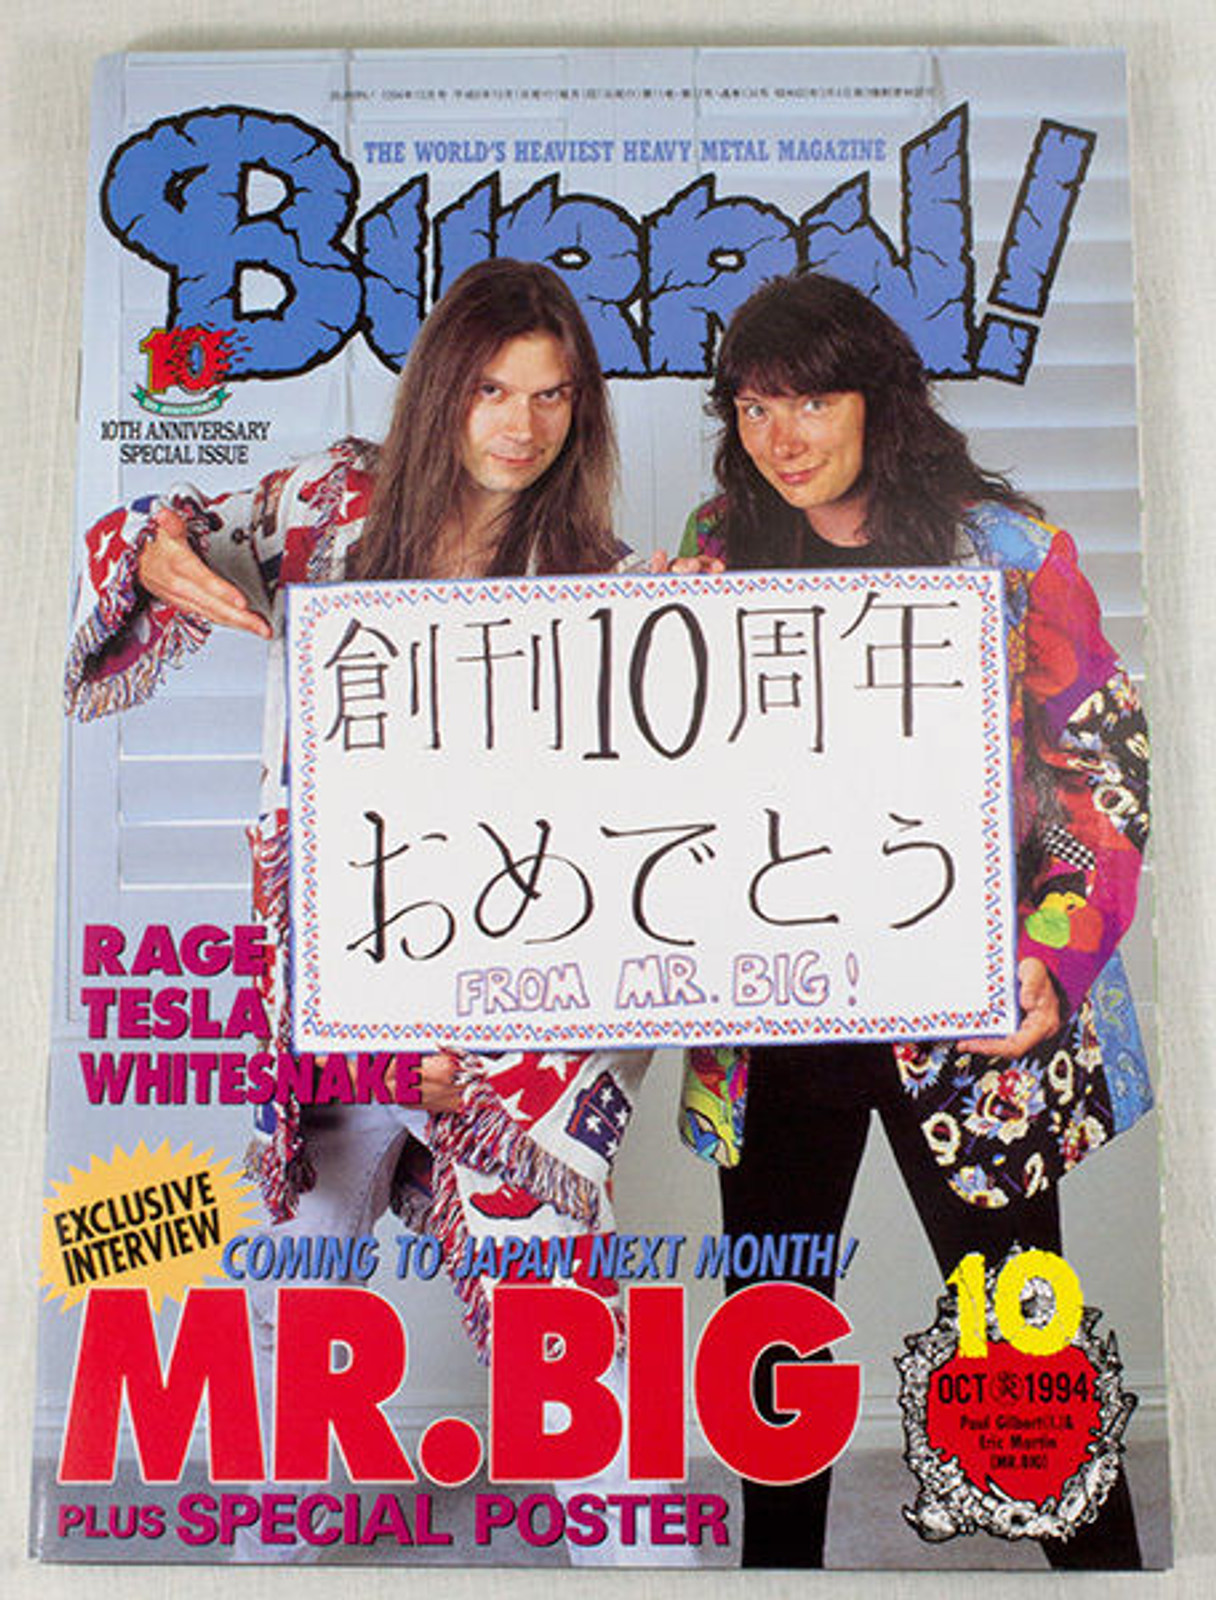 1994/10 BURRN! Japan Rock Magazine MR.BIG/WHITESNAKE/RAGE/TESLA/THE ALMIGHTY